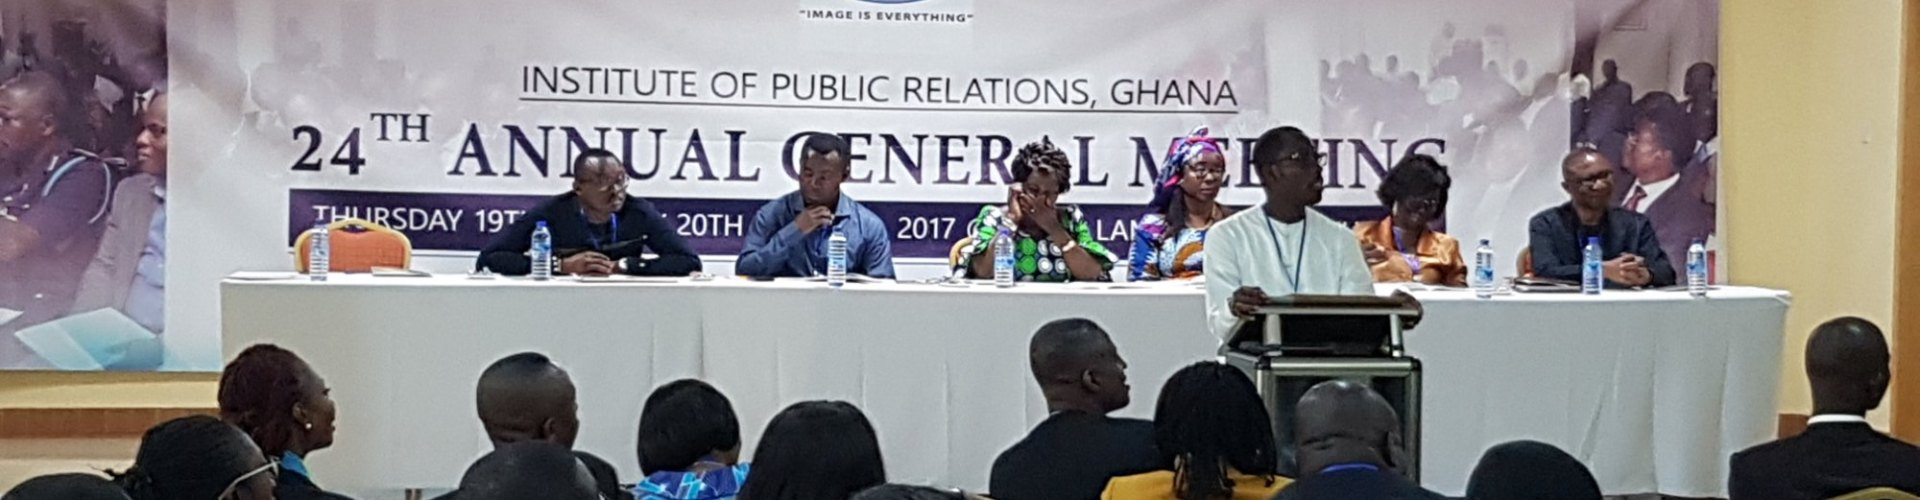 The next generation of PR pros: IPR, Ghana can aid you, but your future is in your hands